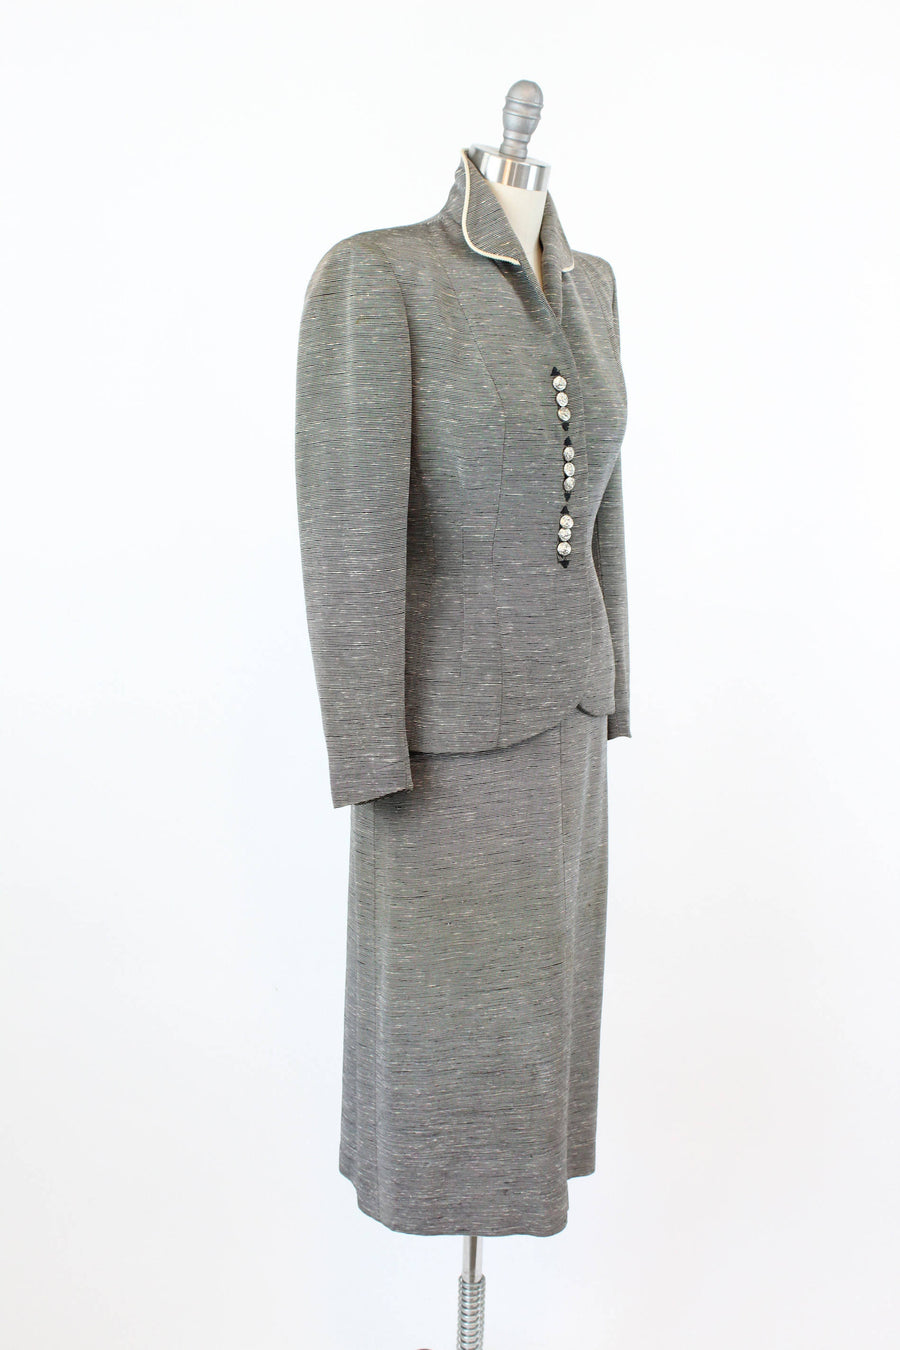 1950's striped suit xxs | fit and flare two piece jacket and skirt | new in